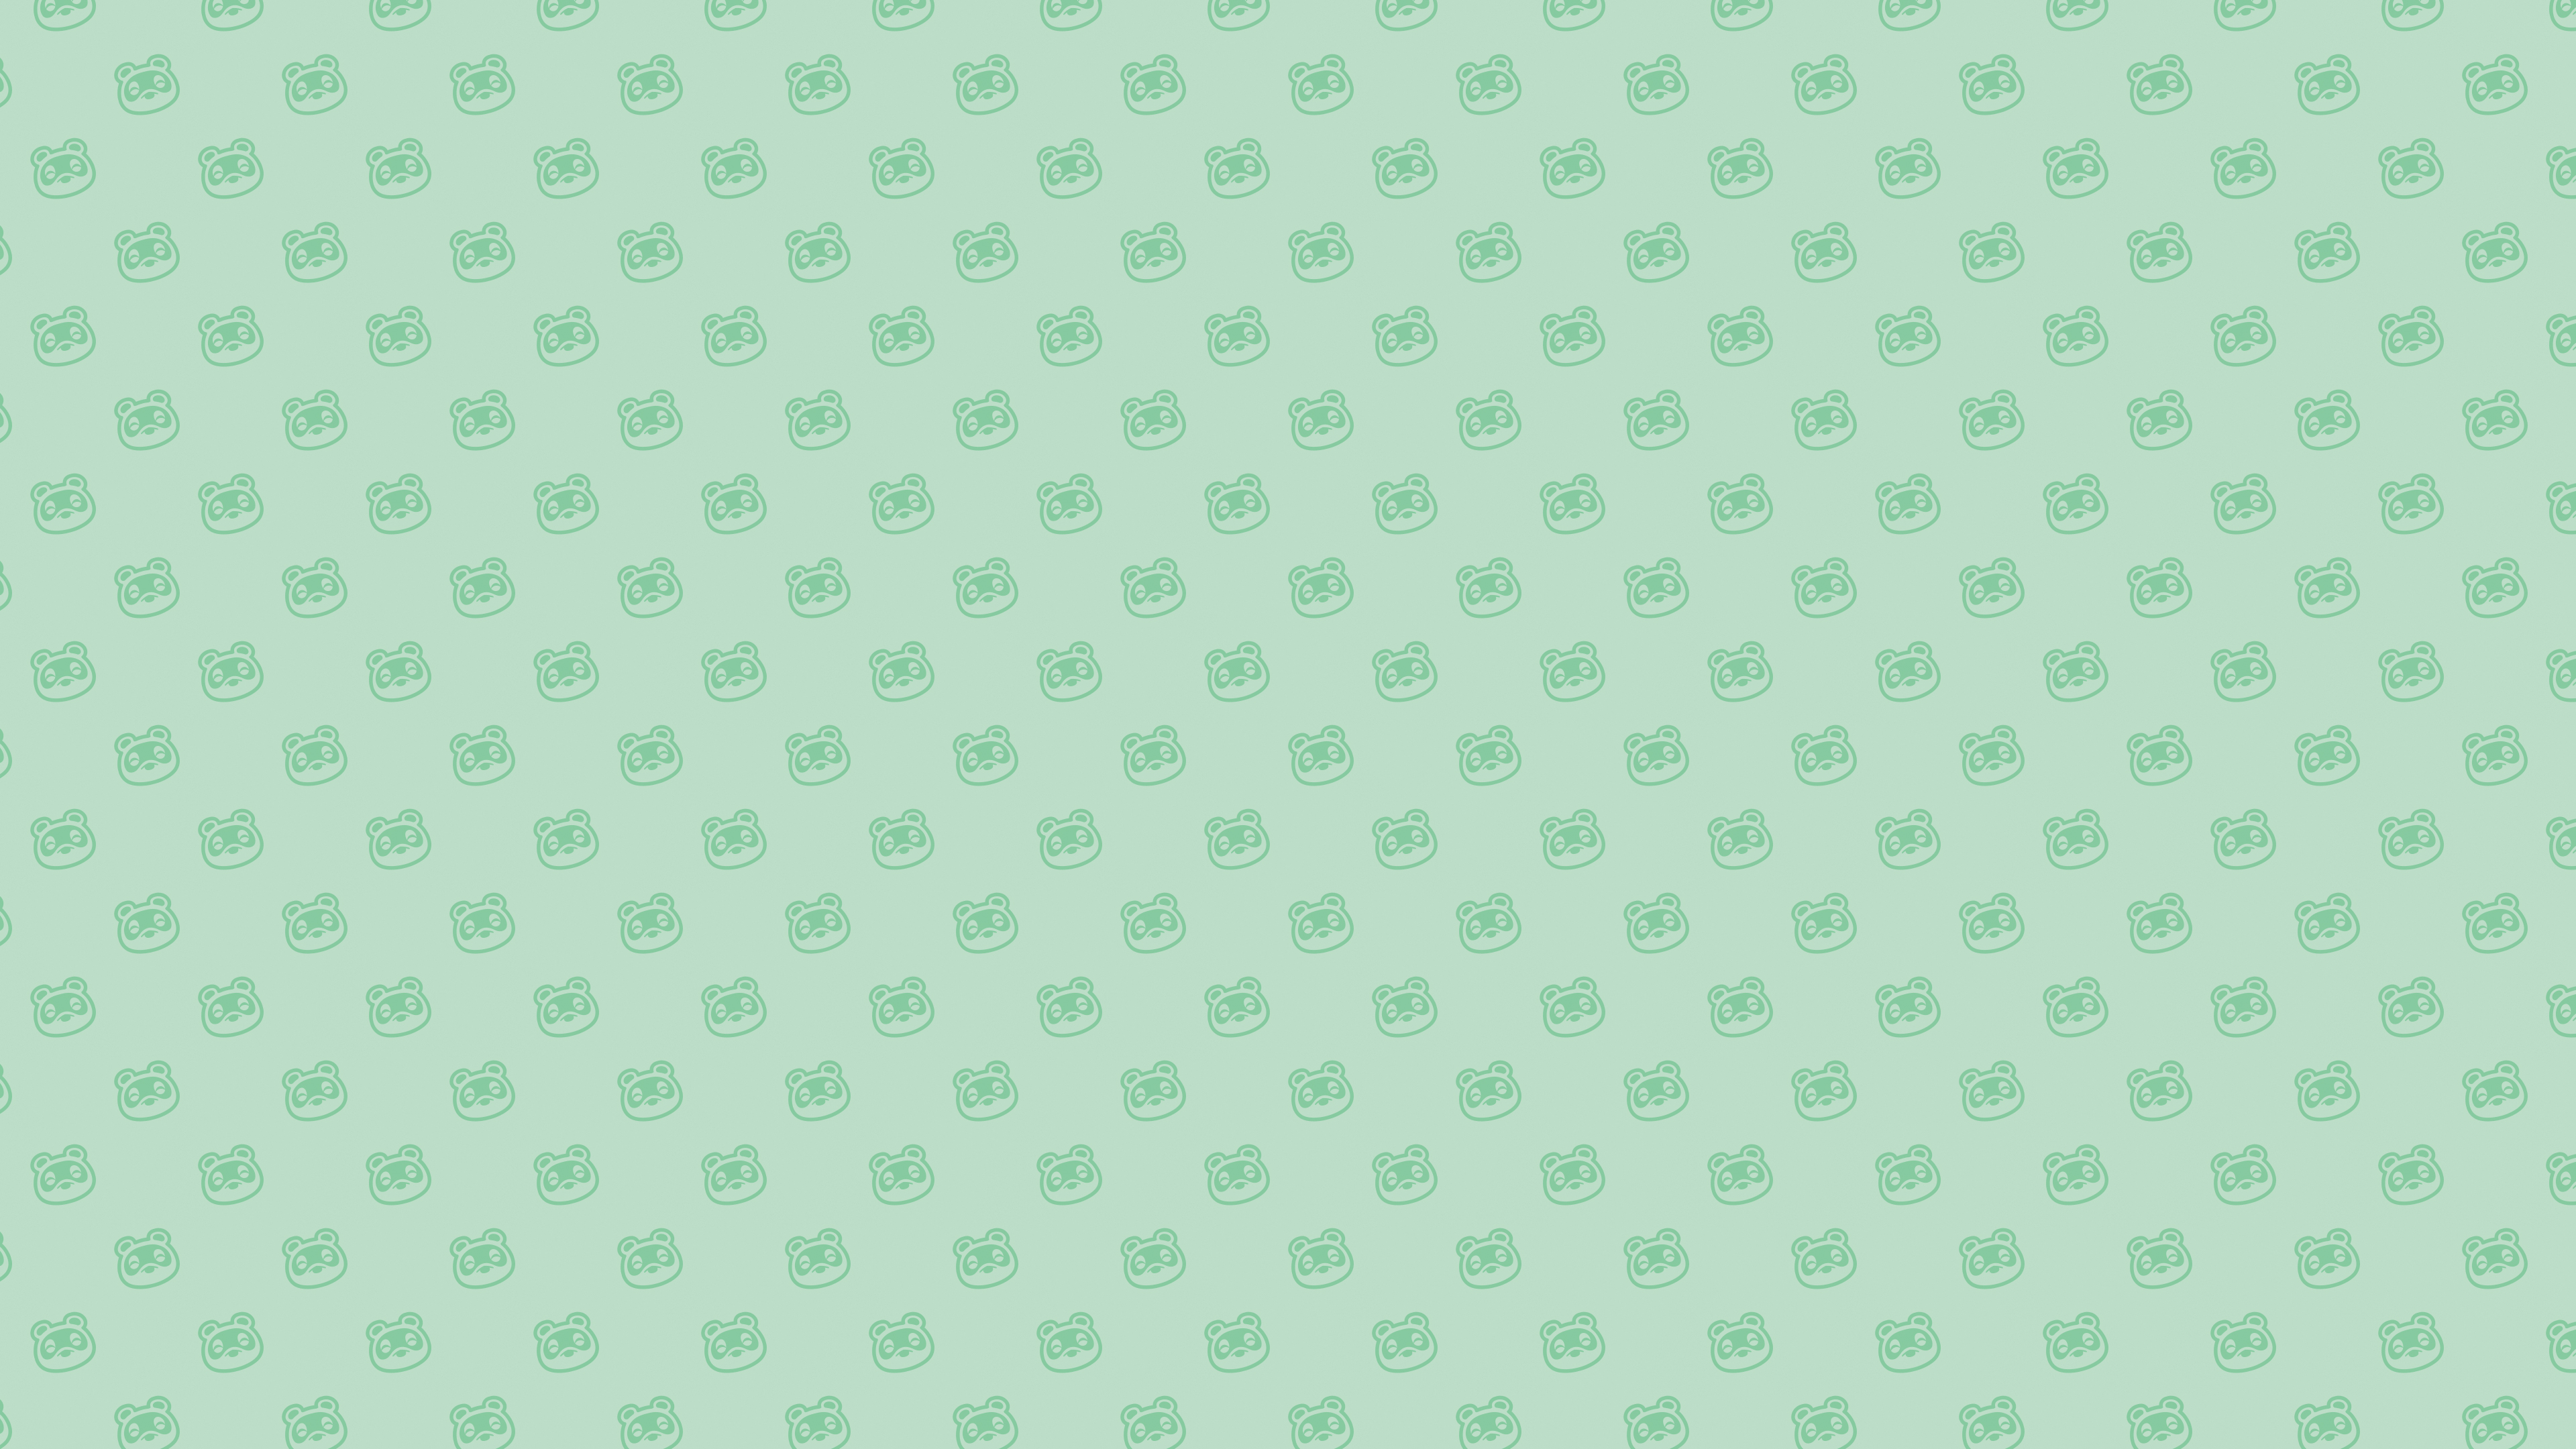 Animal Crossing New Horizons Nook Pattern Wallpaper Cat With Monocle